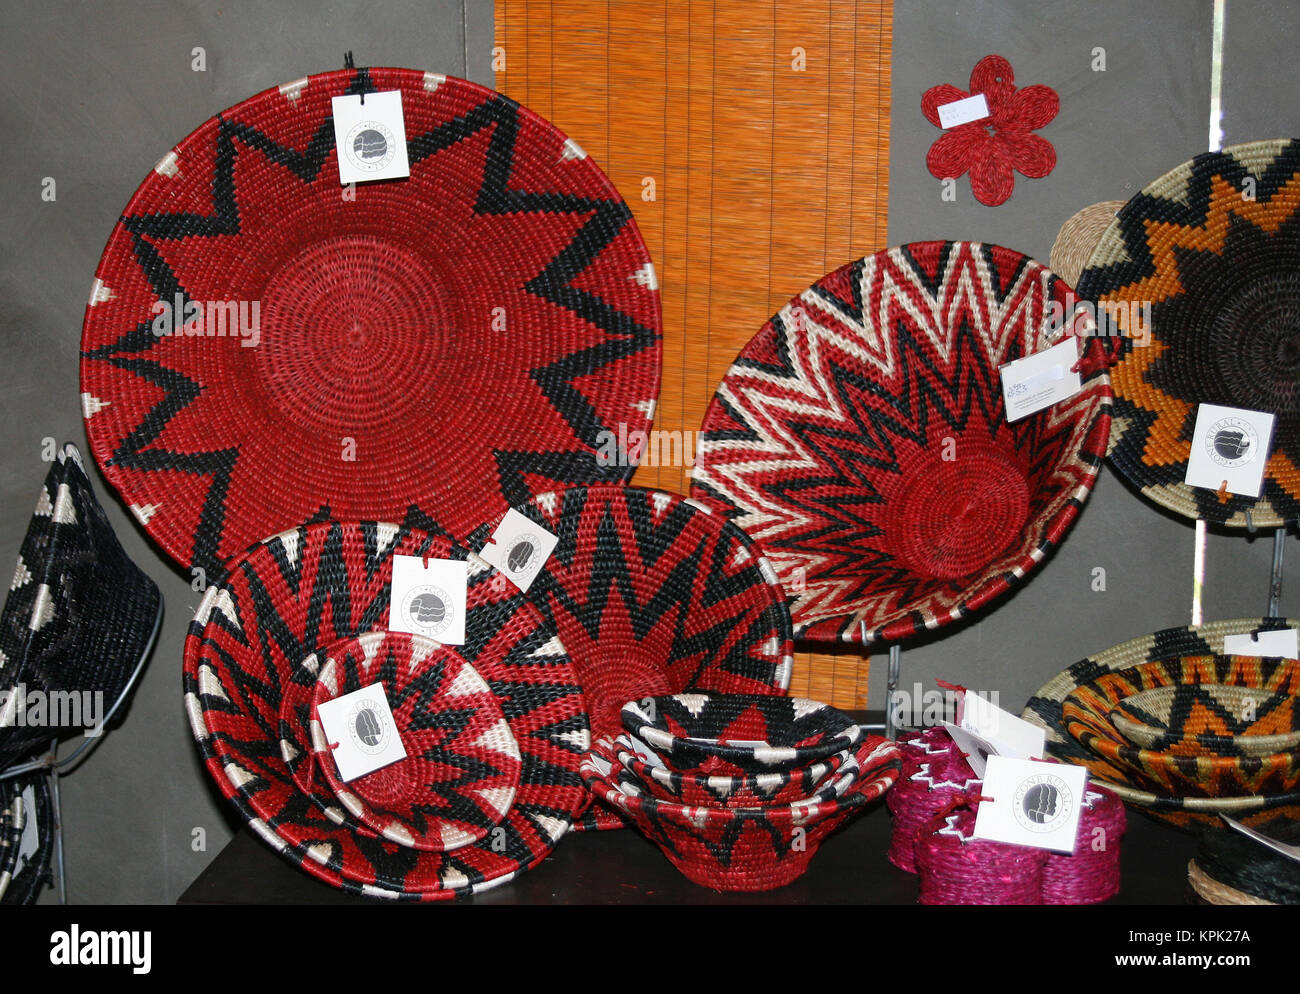 Woven basket souvenirs on display, Kingdom of Swaziland. Stock Photo